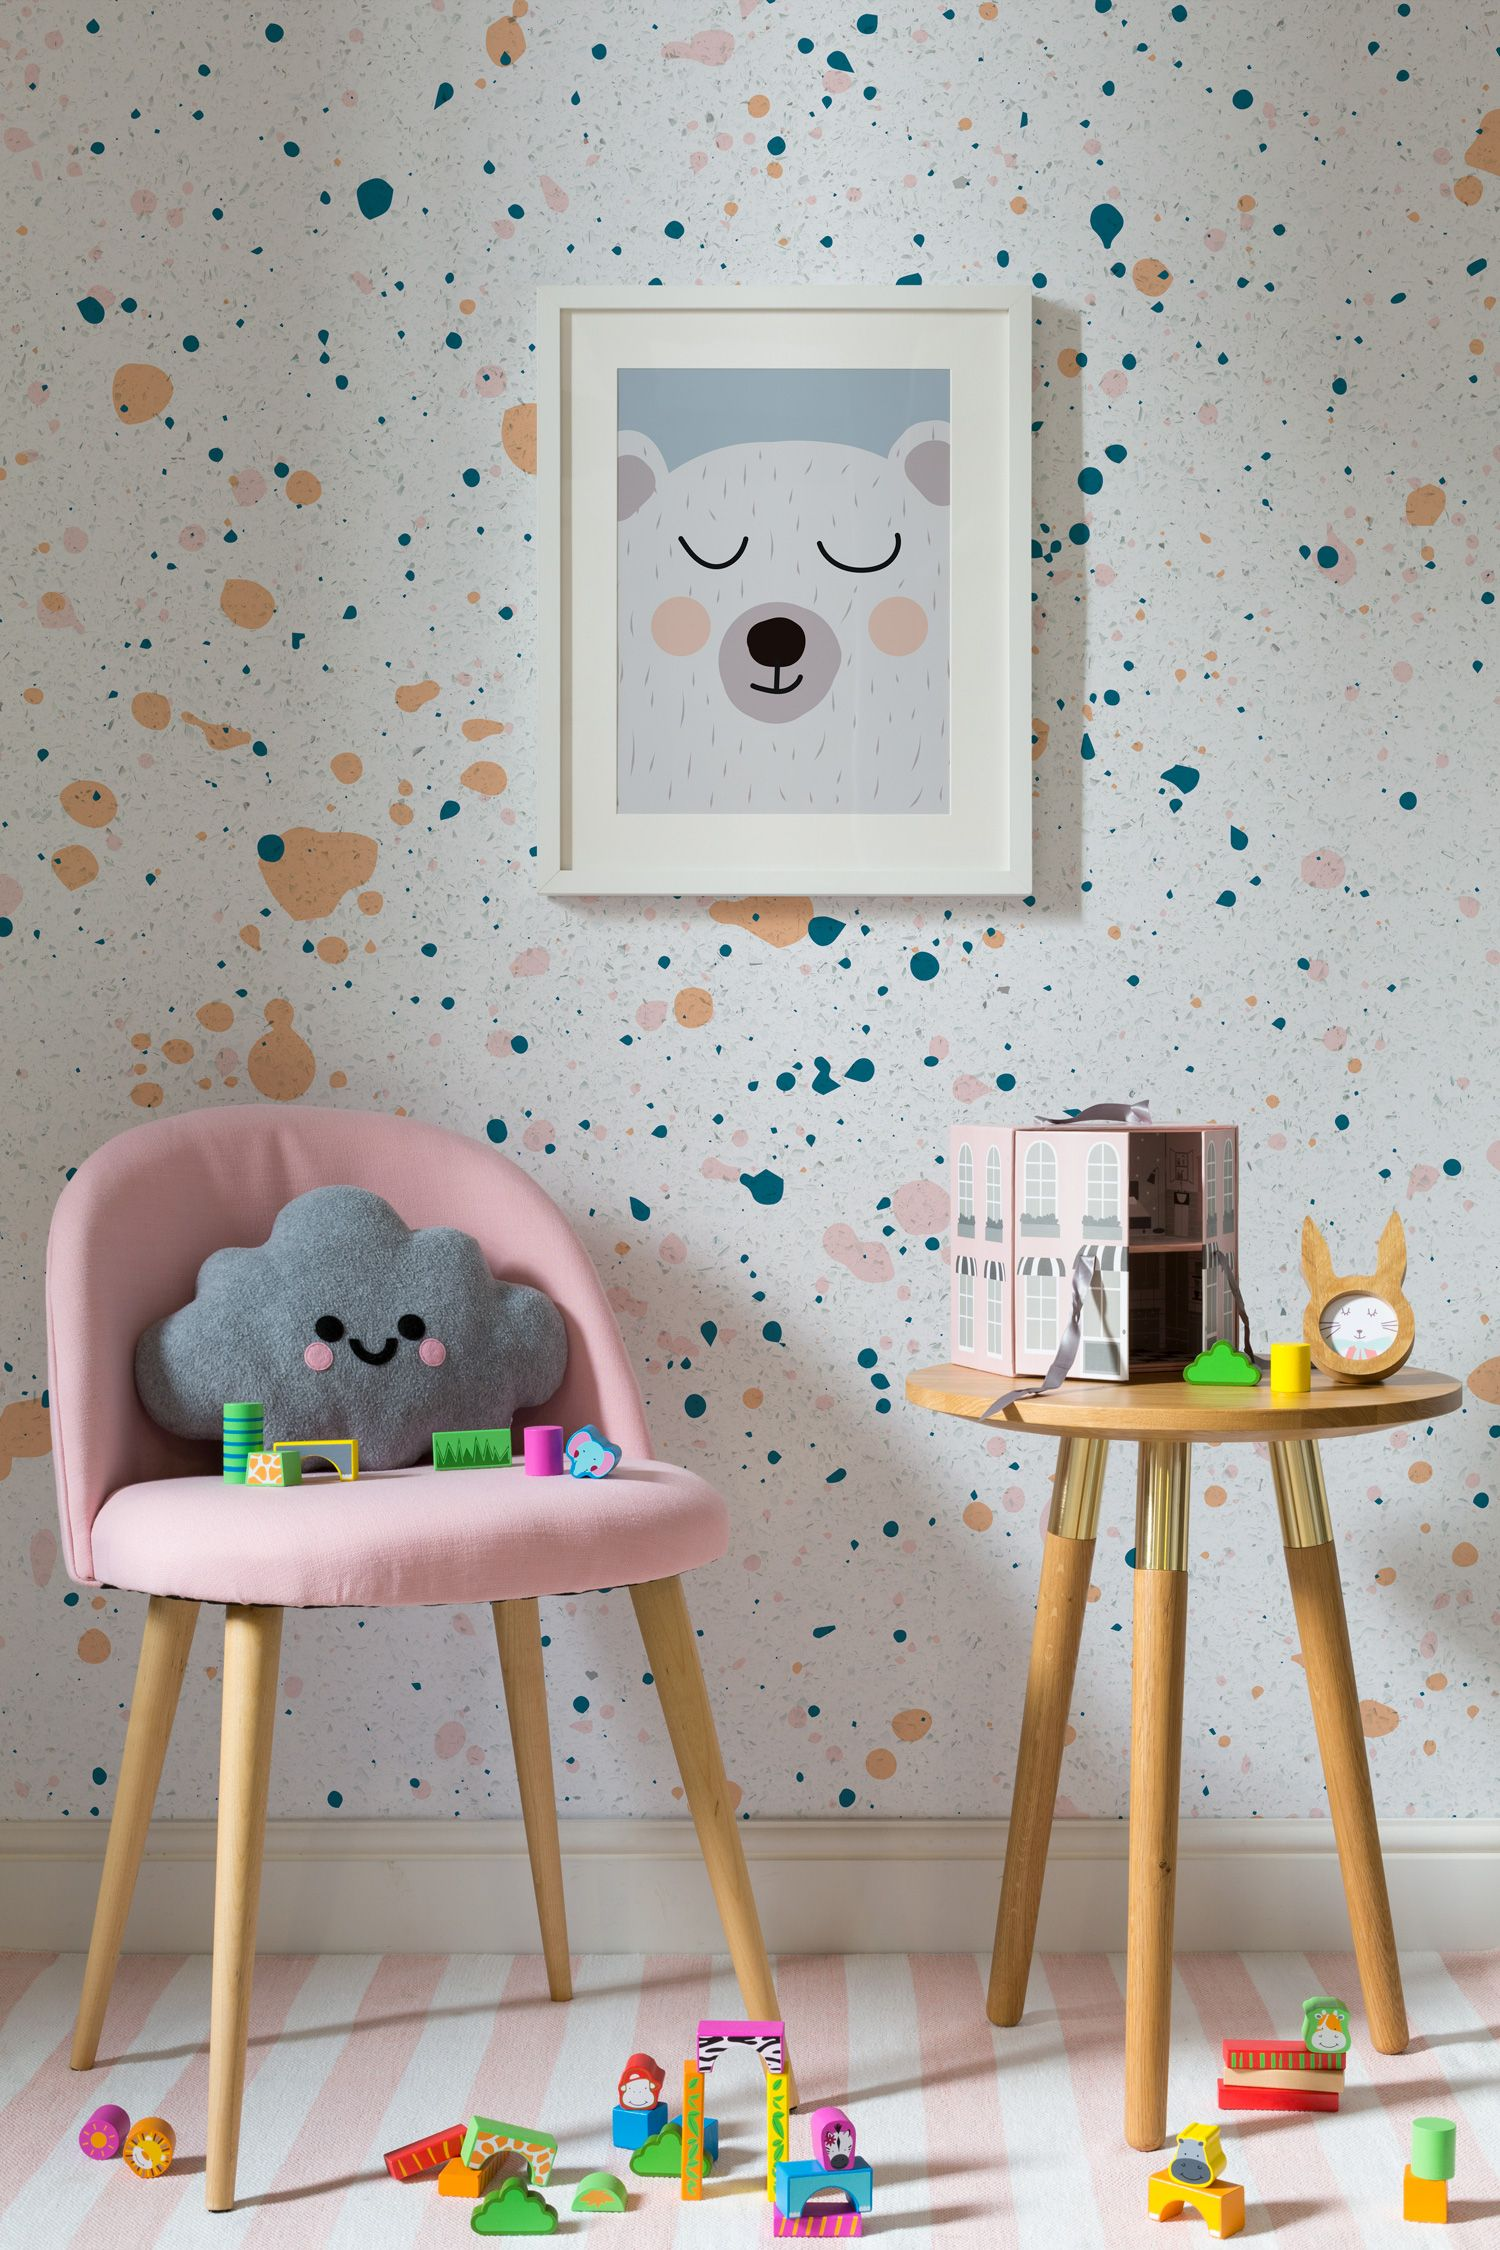 Peach And Teal Speckle Wall Mural | Childrens Room | Playroom Mural